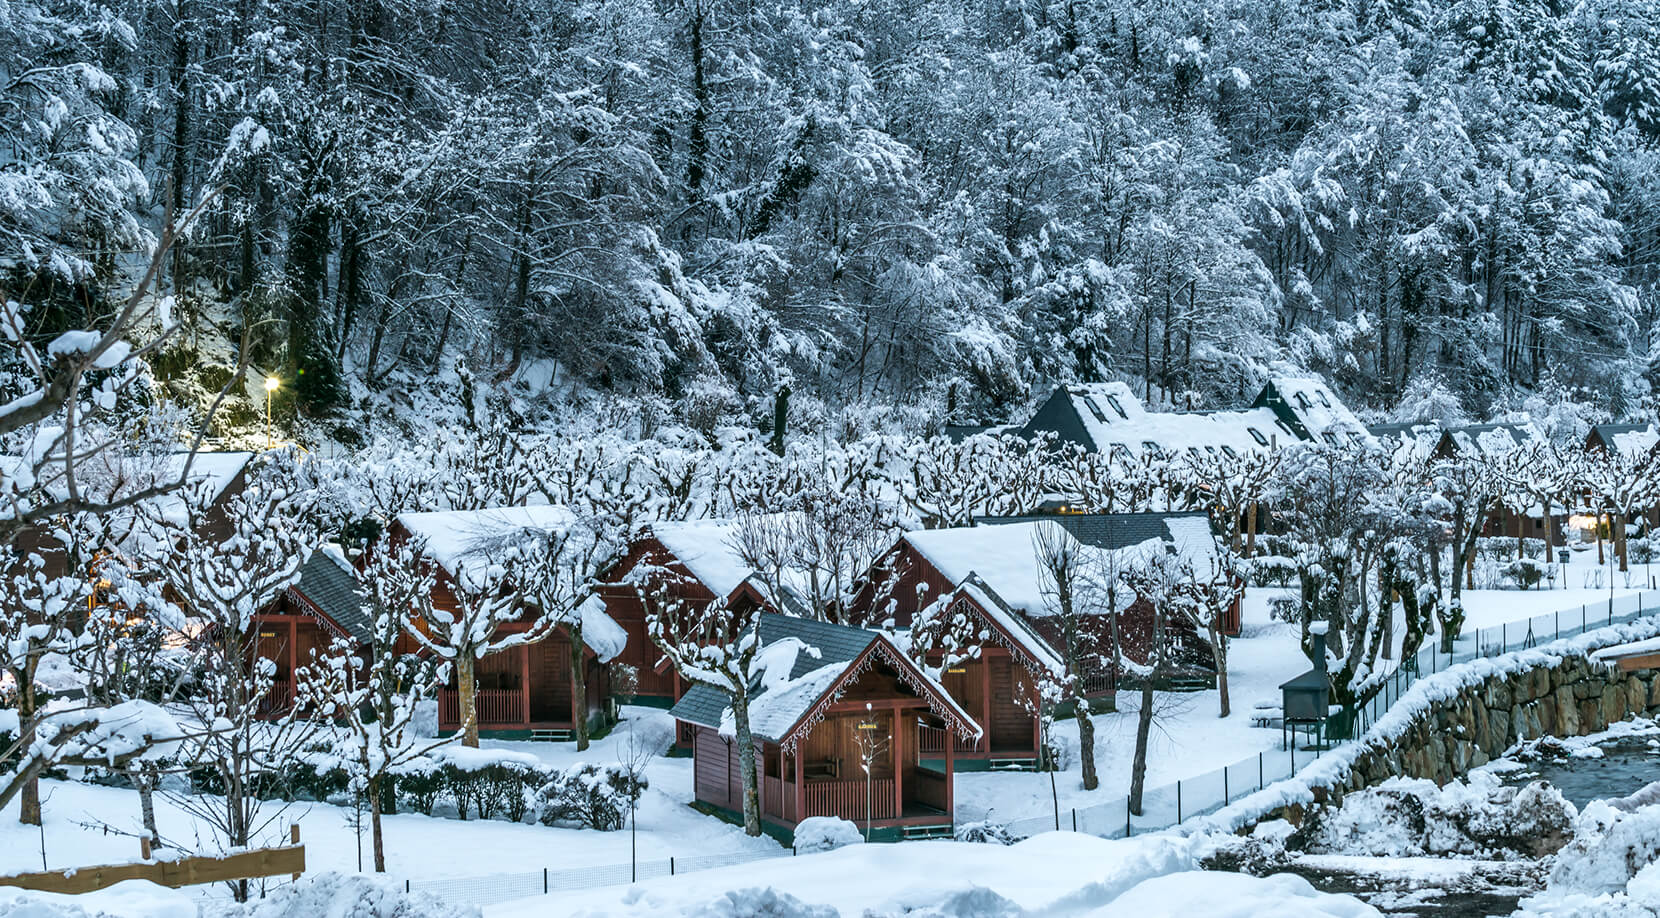 Cozy bungalows and cabins for every taste